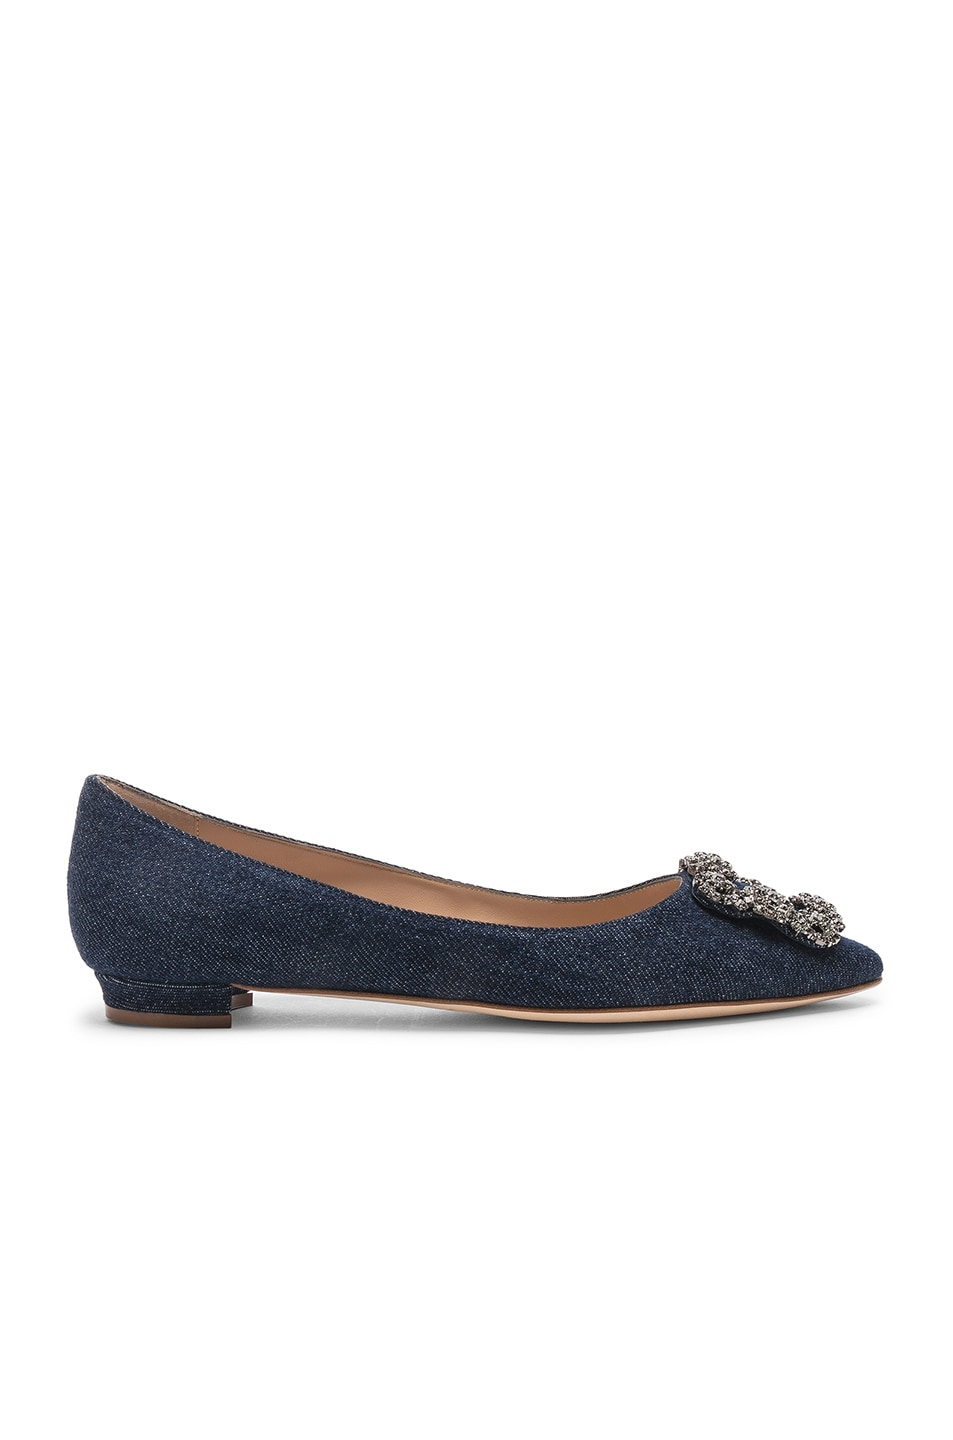 Image 1 of Manolo Blahnik Hangisiflat 10 Pea Flat in Jeans Delave